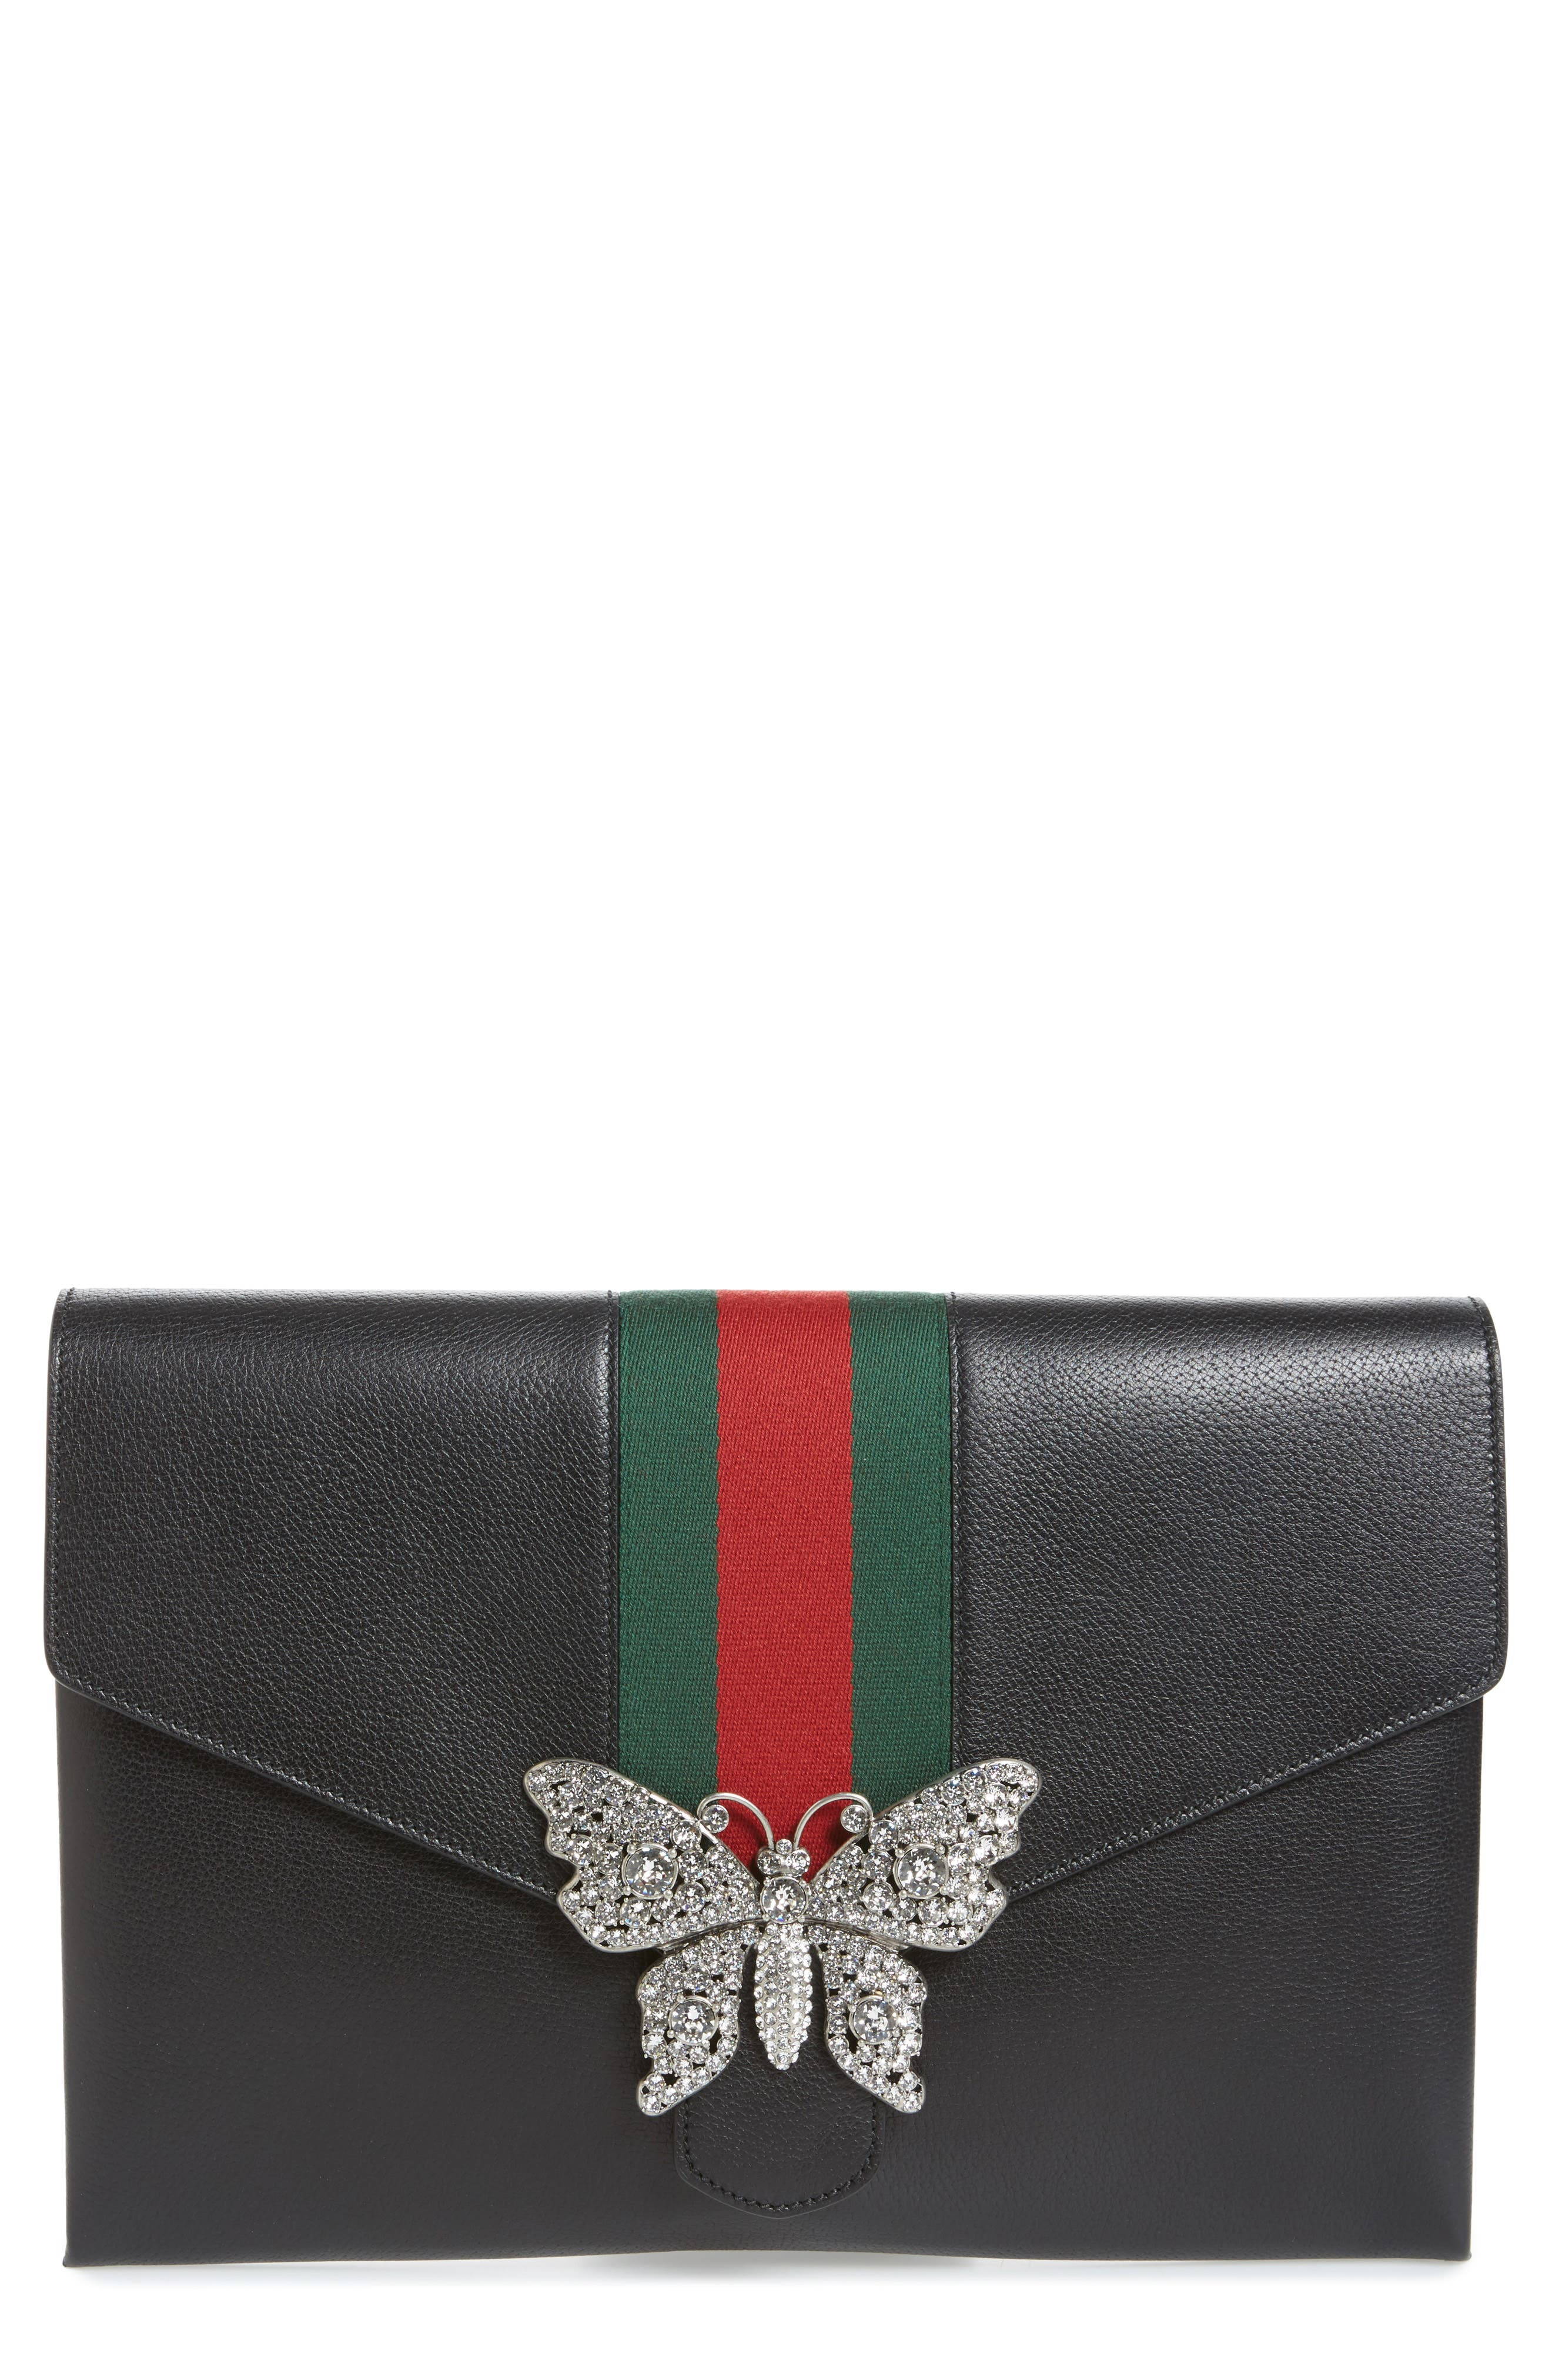 Gucci Totem Crystal Embellished Butterfly Leather Clutch